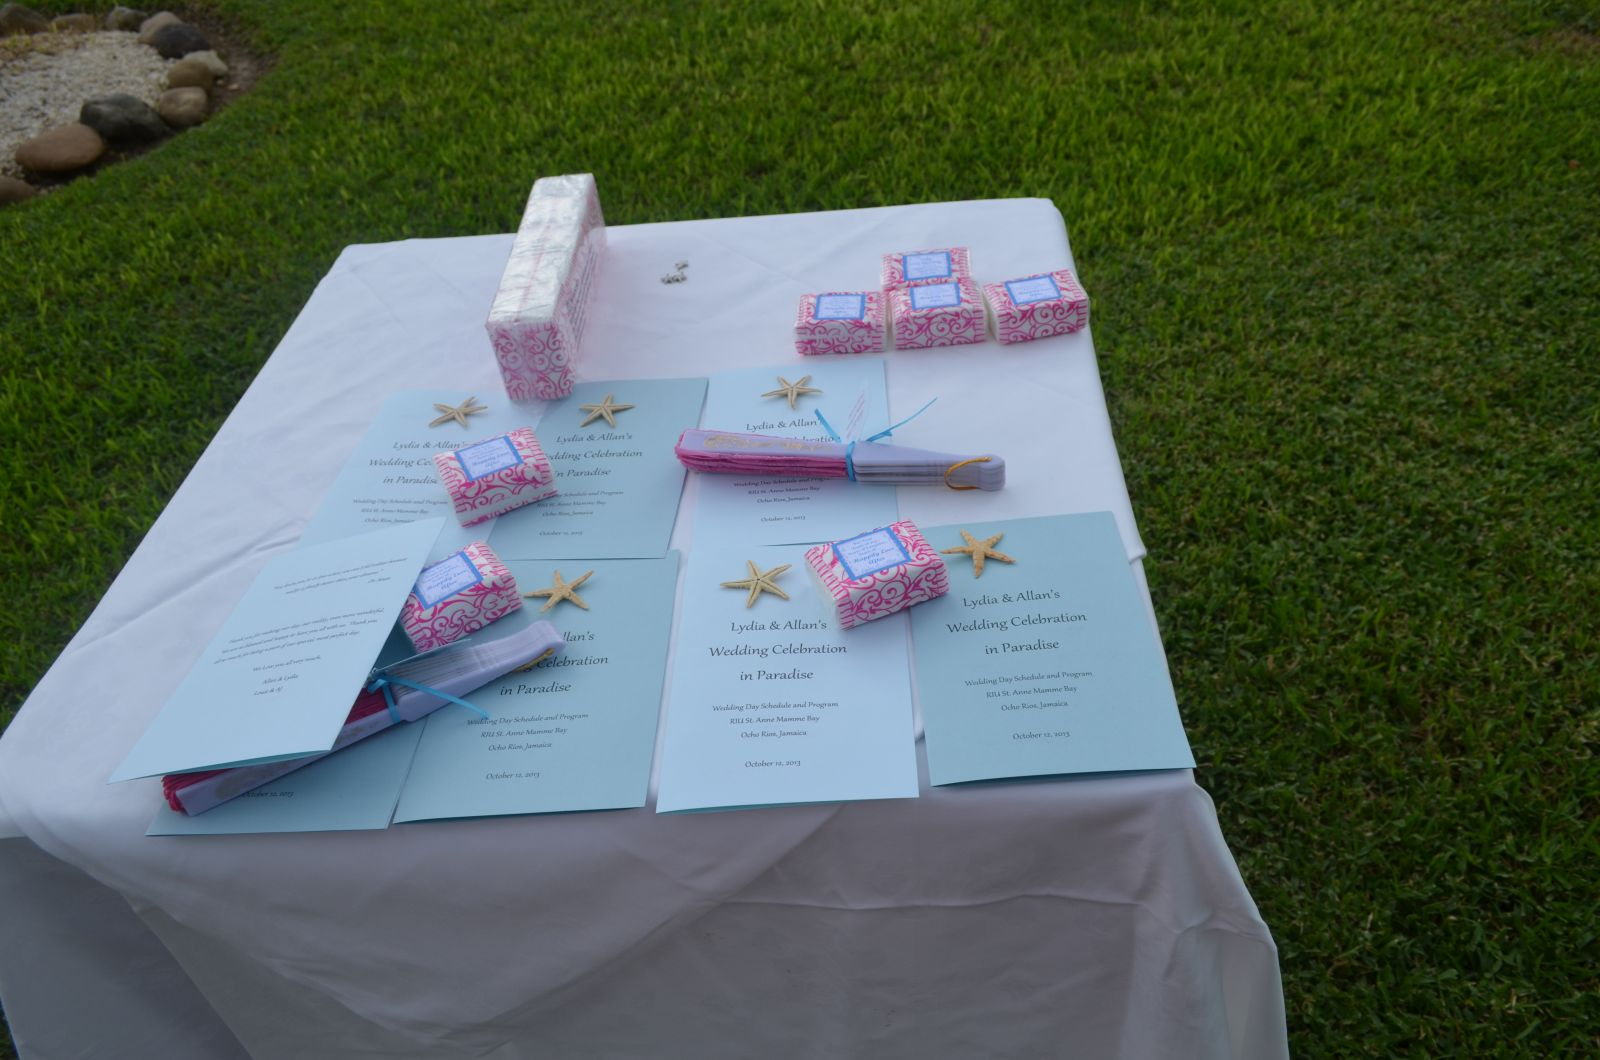 Table with Silk fans, tissues And wedding programs